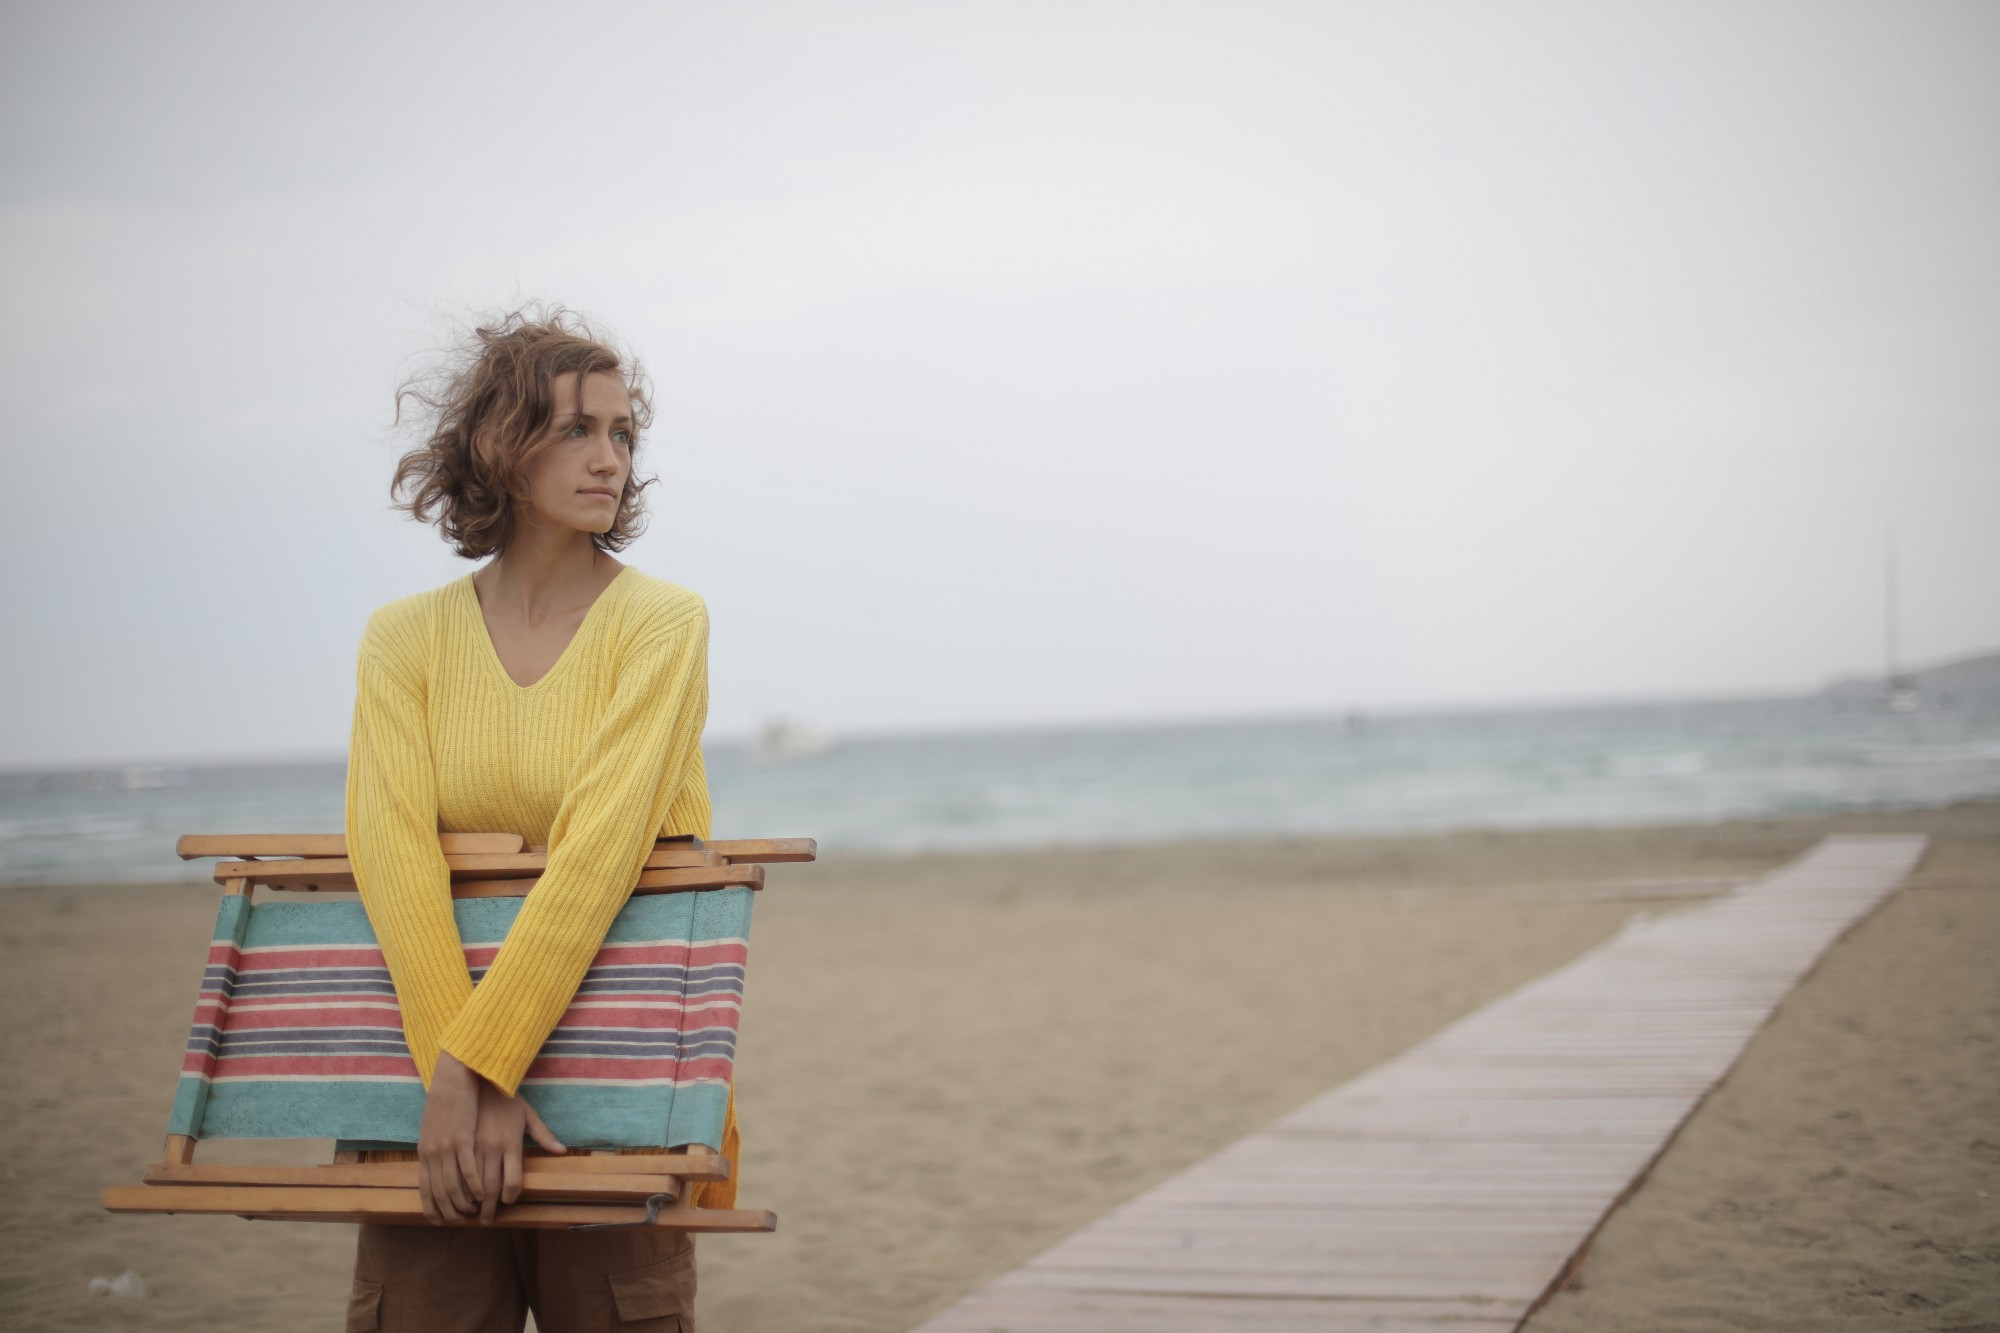 female traveler with beachchair looking wary on the beach